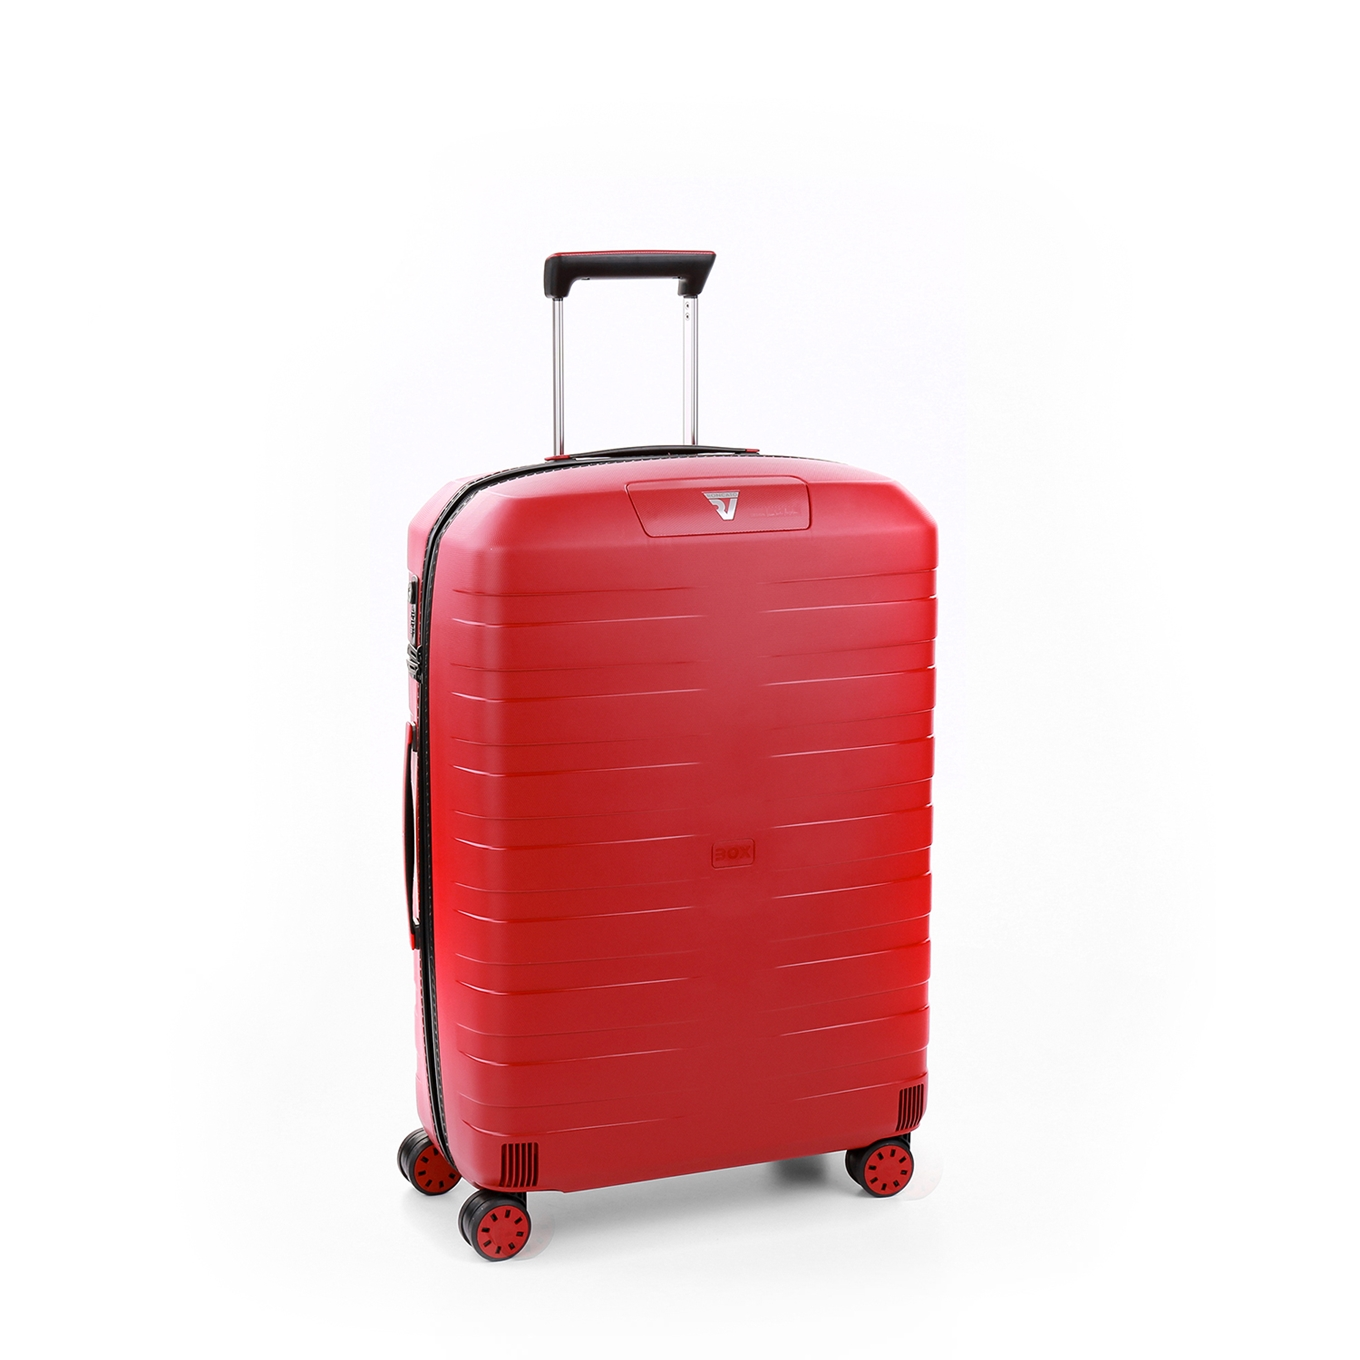 Roncato Box 4.0 Medium 4 Wiel Trolley 69 rosso Harde Koffer <br/></noscript><img class=